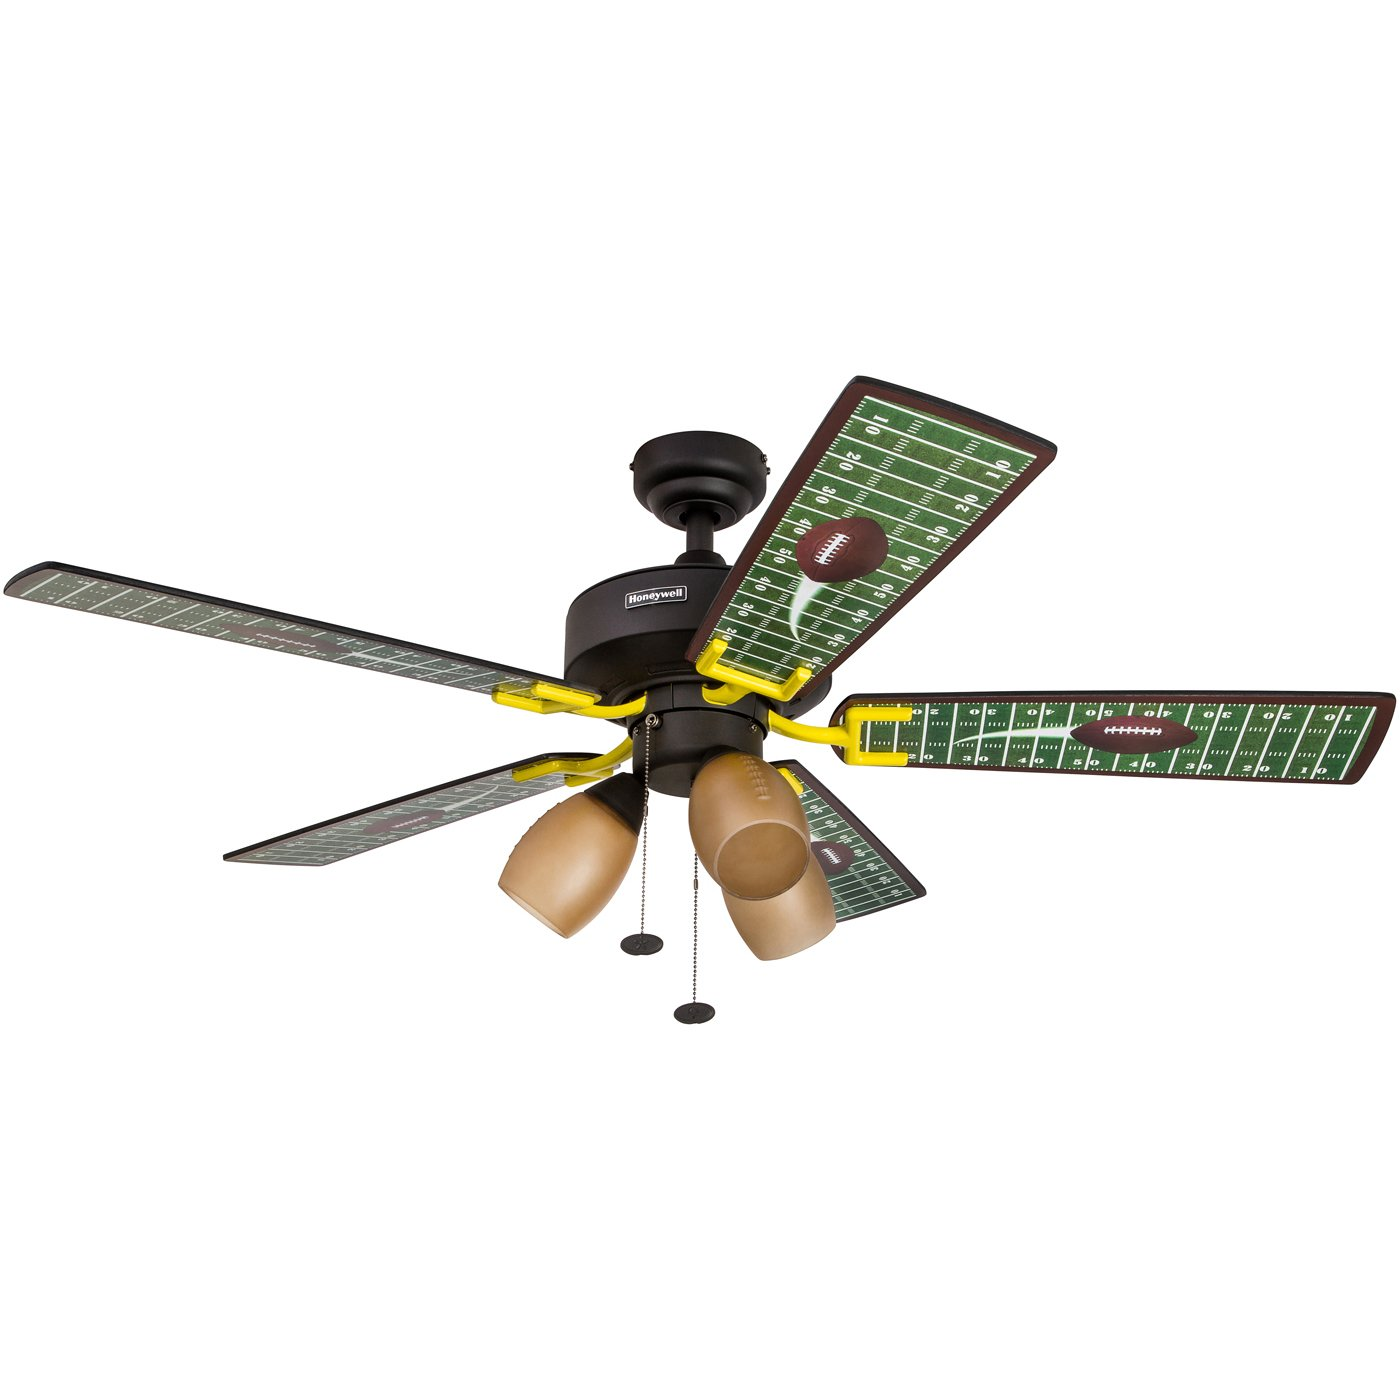 Honeywell Touchdown 48-Inch Football Ceiling Fan with Amber Shade Lights, Five Football Themed Blades, Matte Black